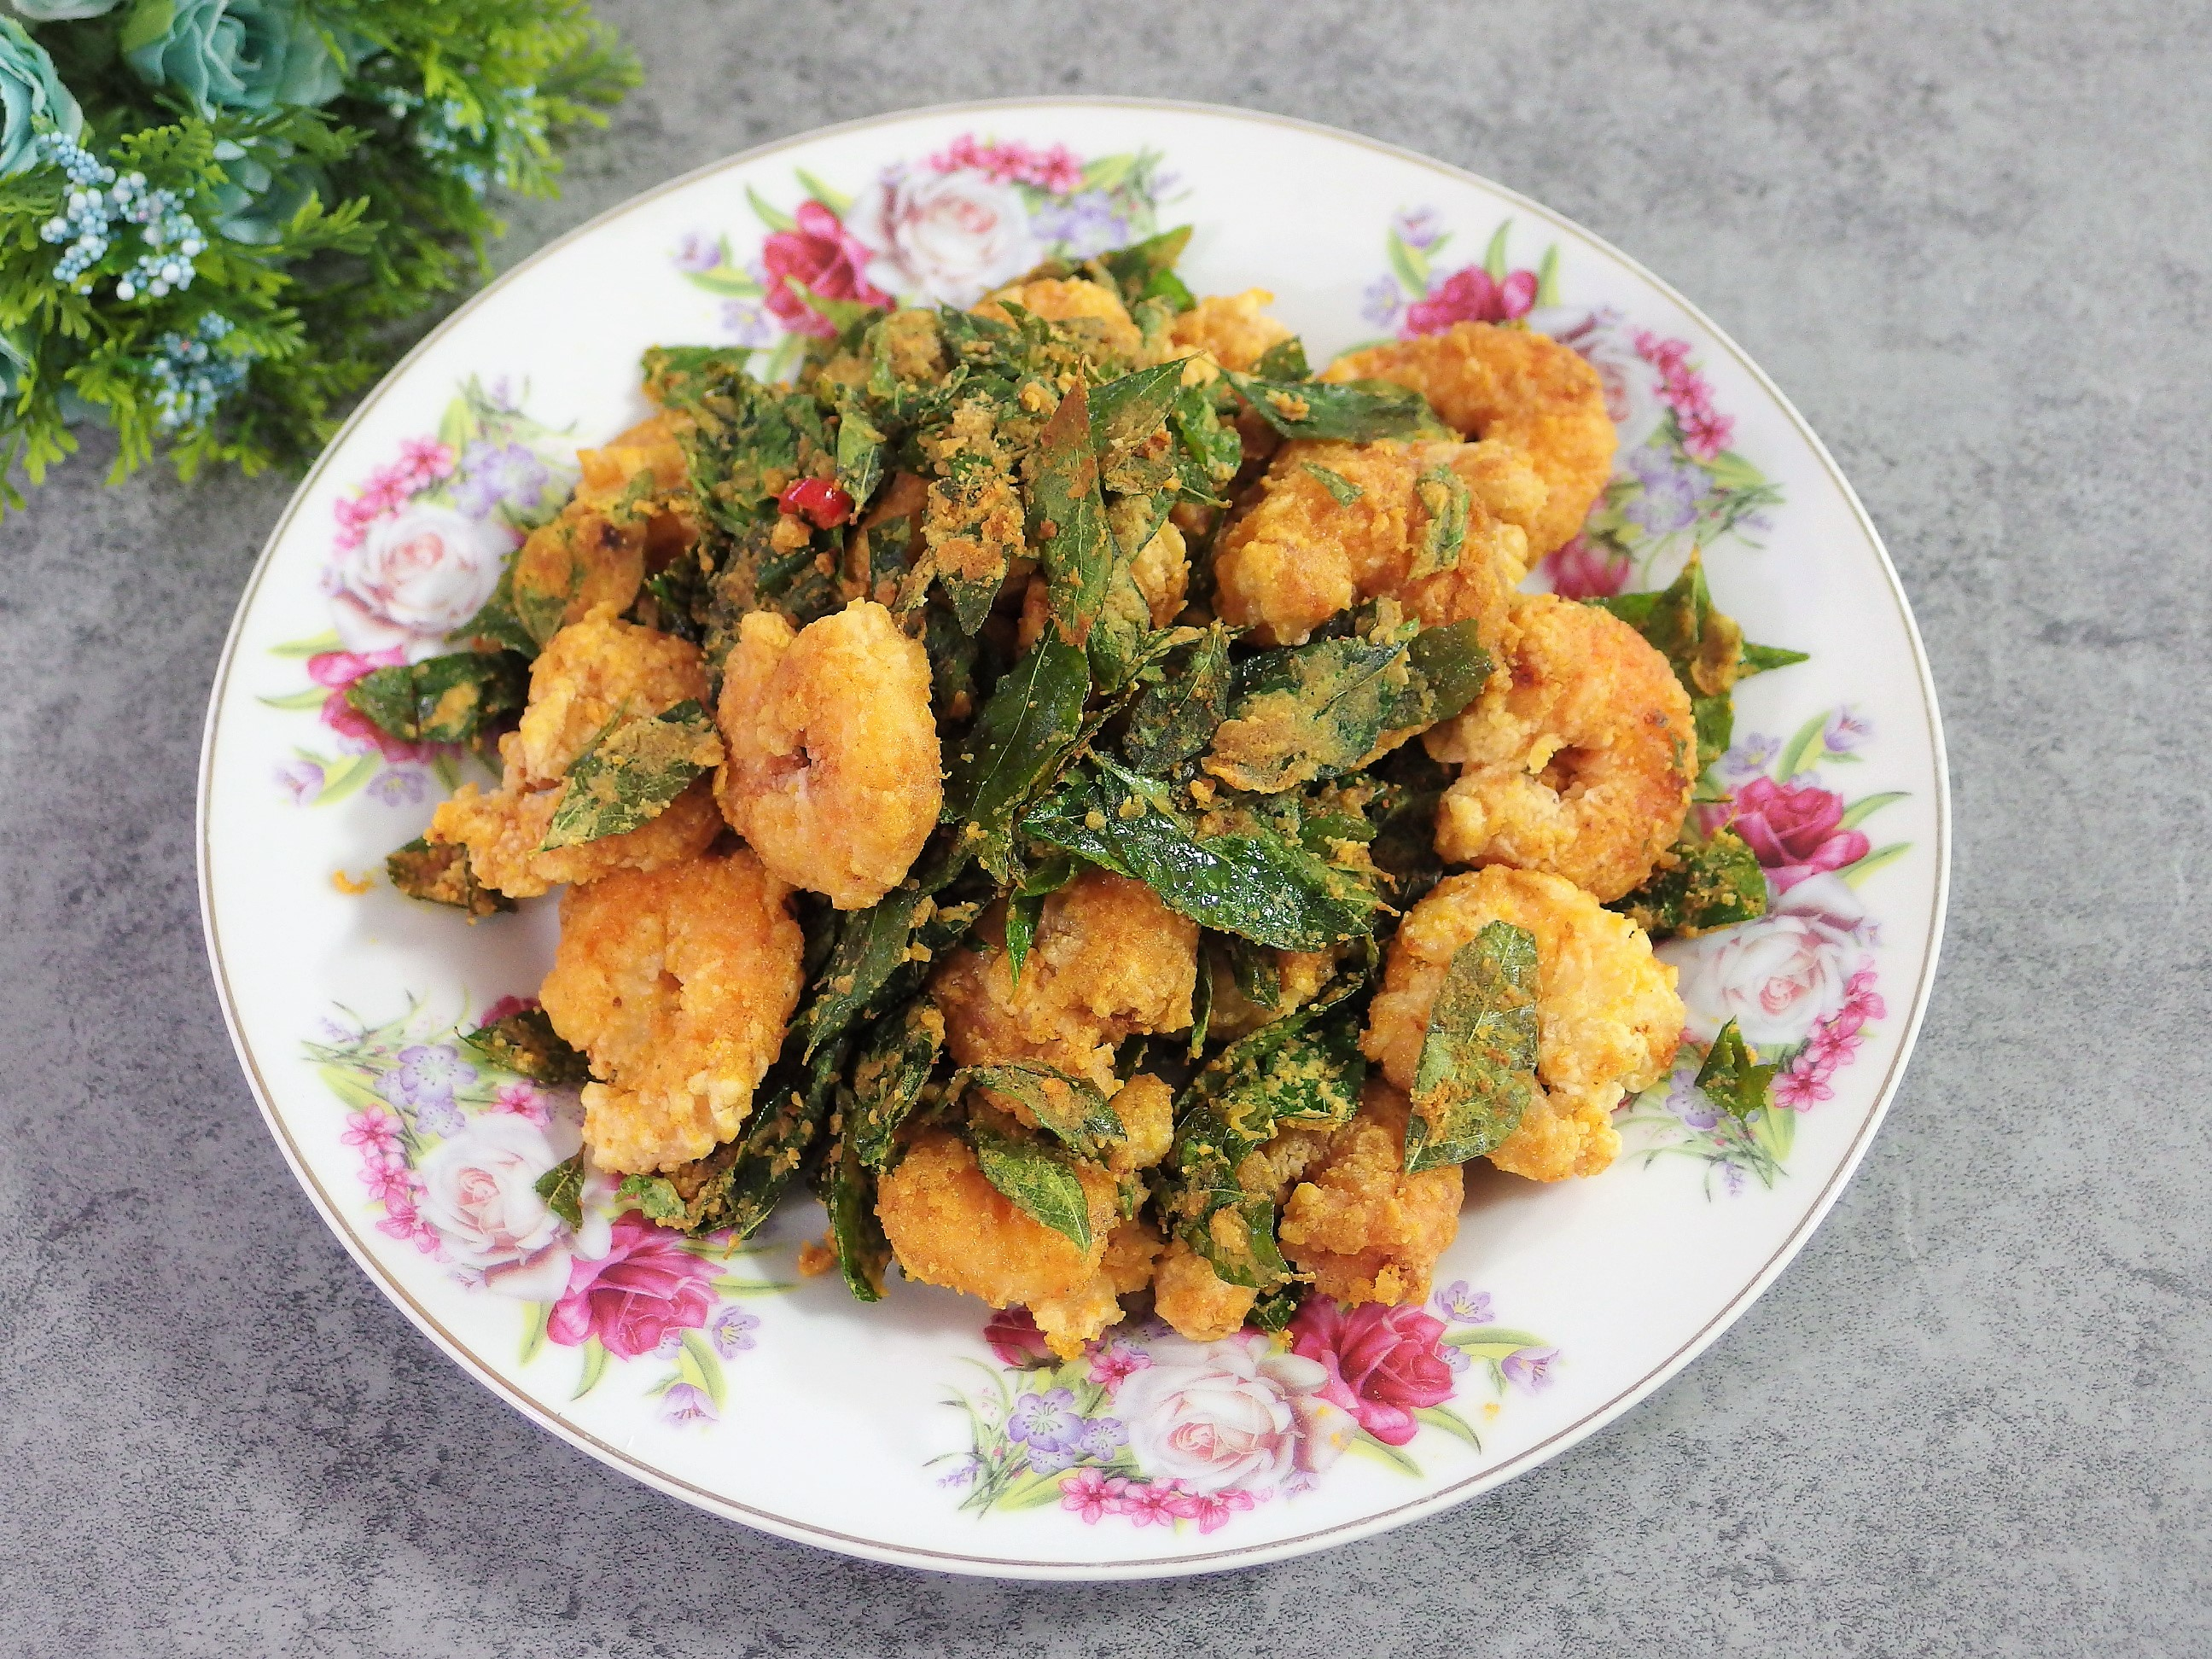 Knorr Salted Egg Powder Recipe - Prawns!